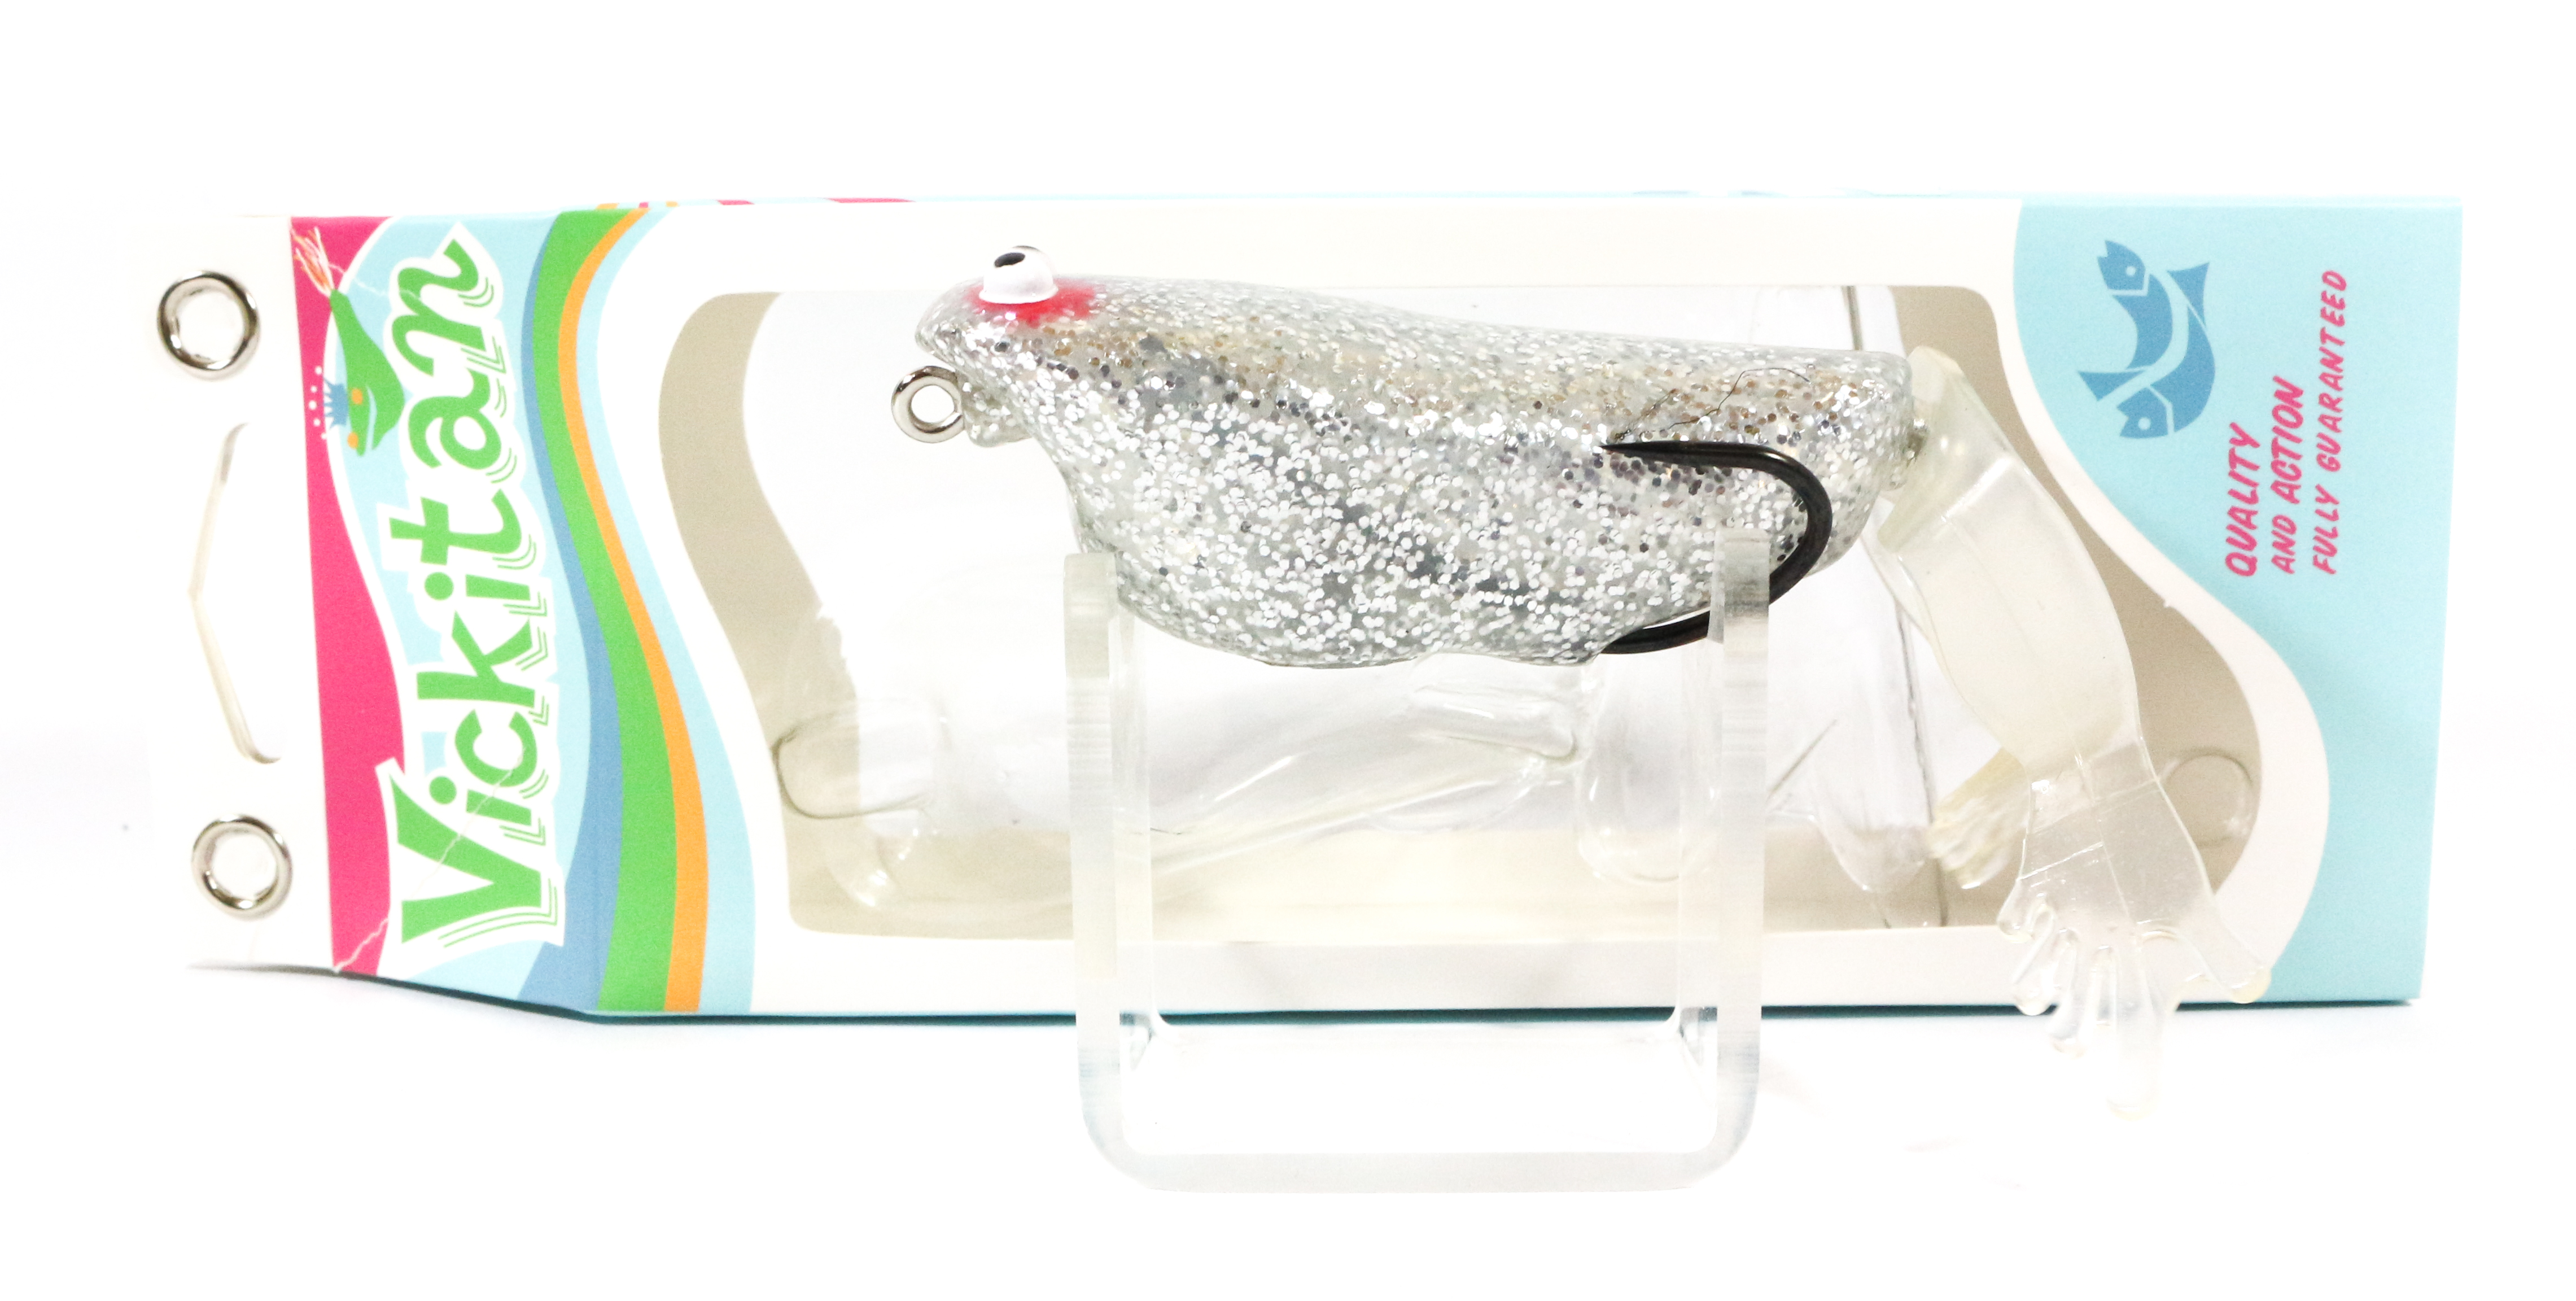 Sale Vickitan PVC Legs Topwater Soft Frog Lure Silver Glitter (0797)